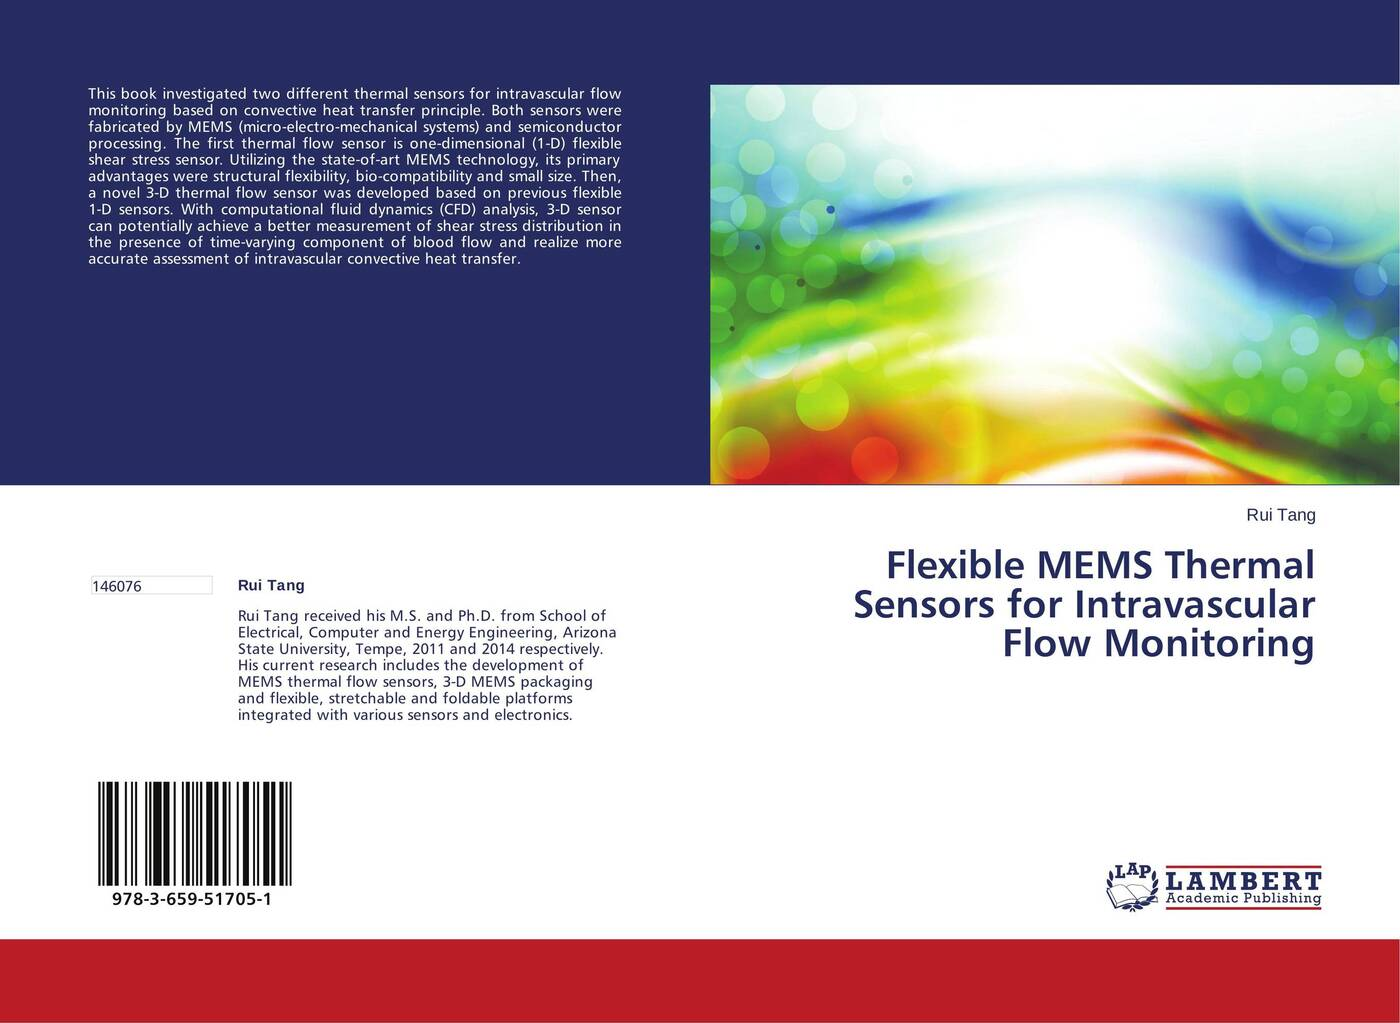 Rui Tang Flexible MEMS Thermal Sensors for Intravascular Flow Monitoring alexandre macedo fernandes double diffusive salt finger convection in a laminar shear flow